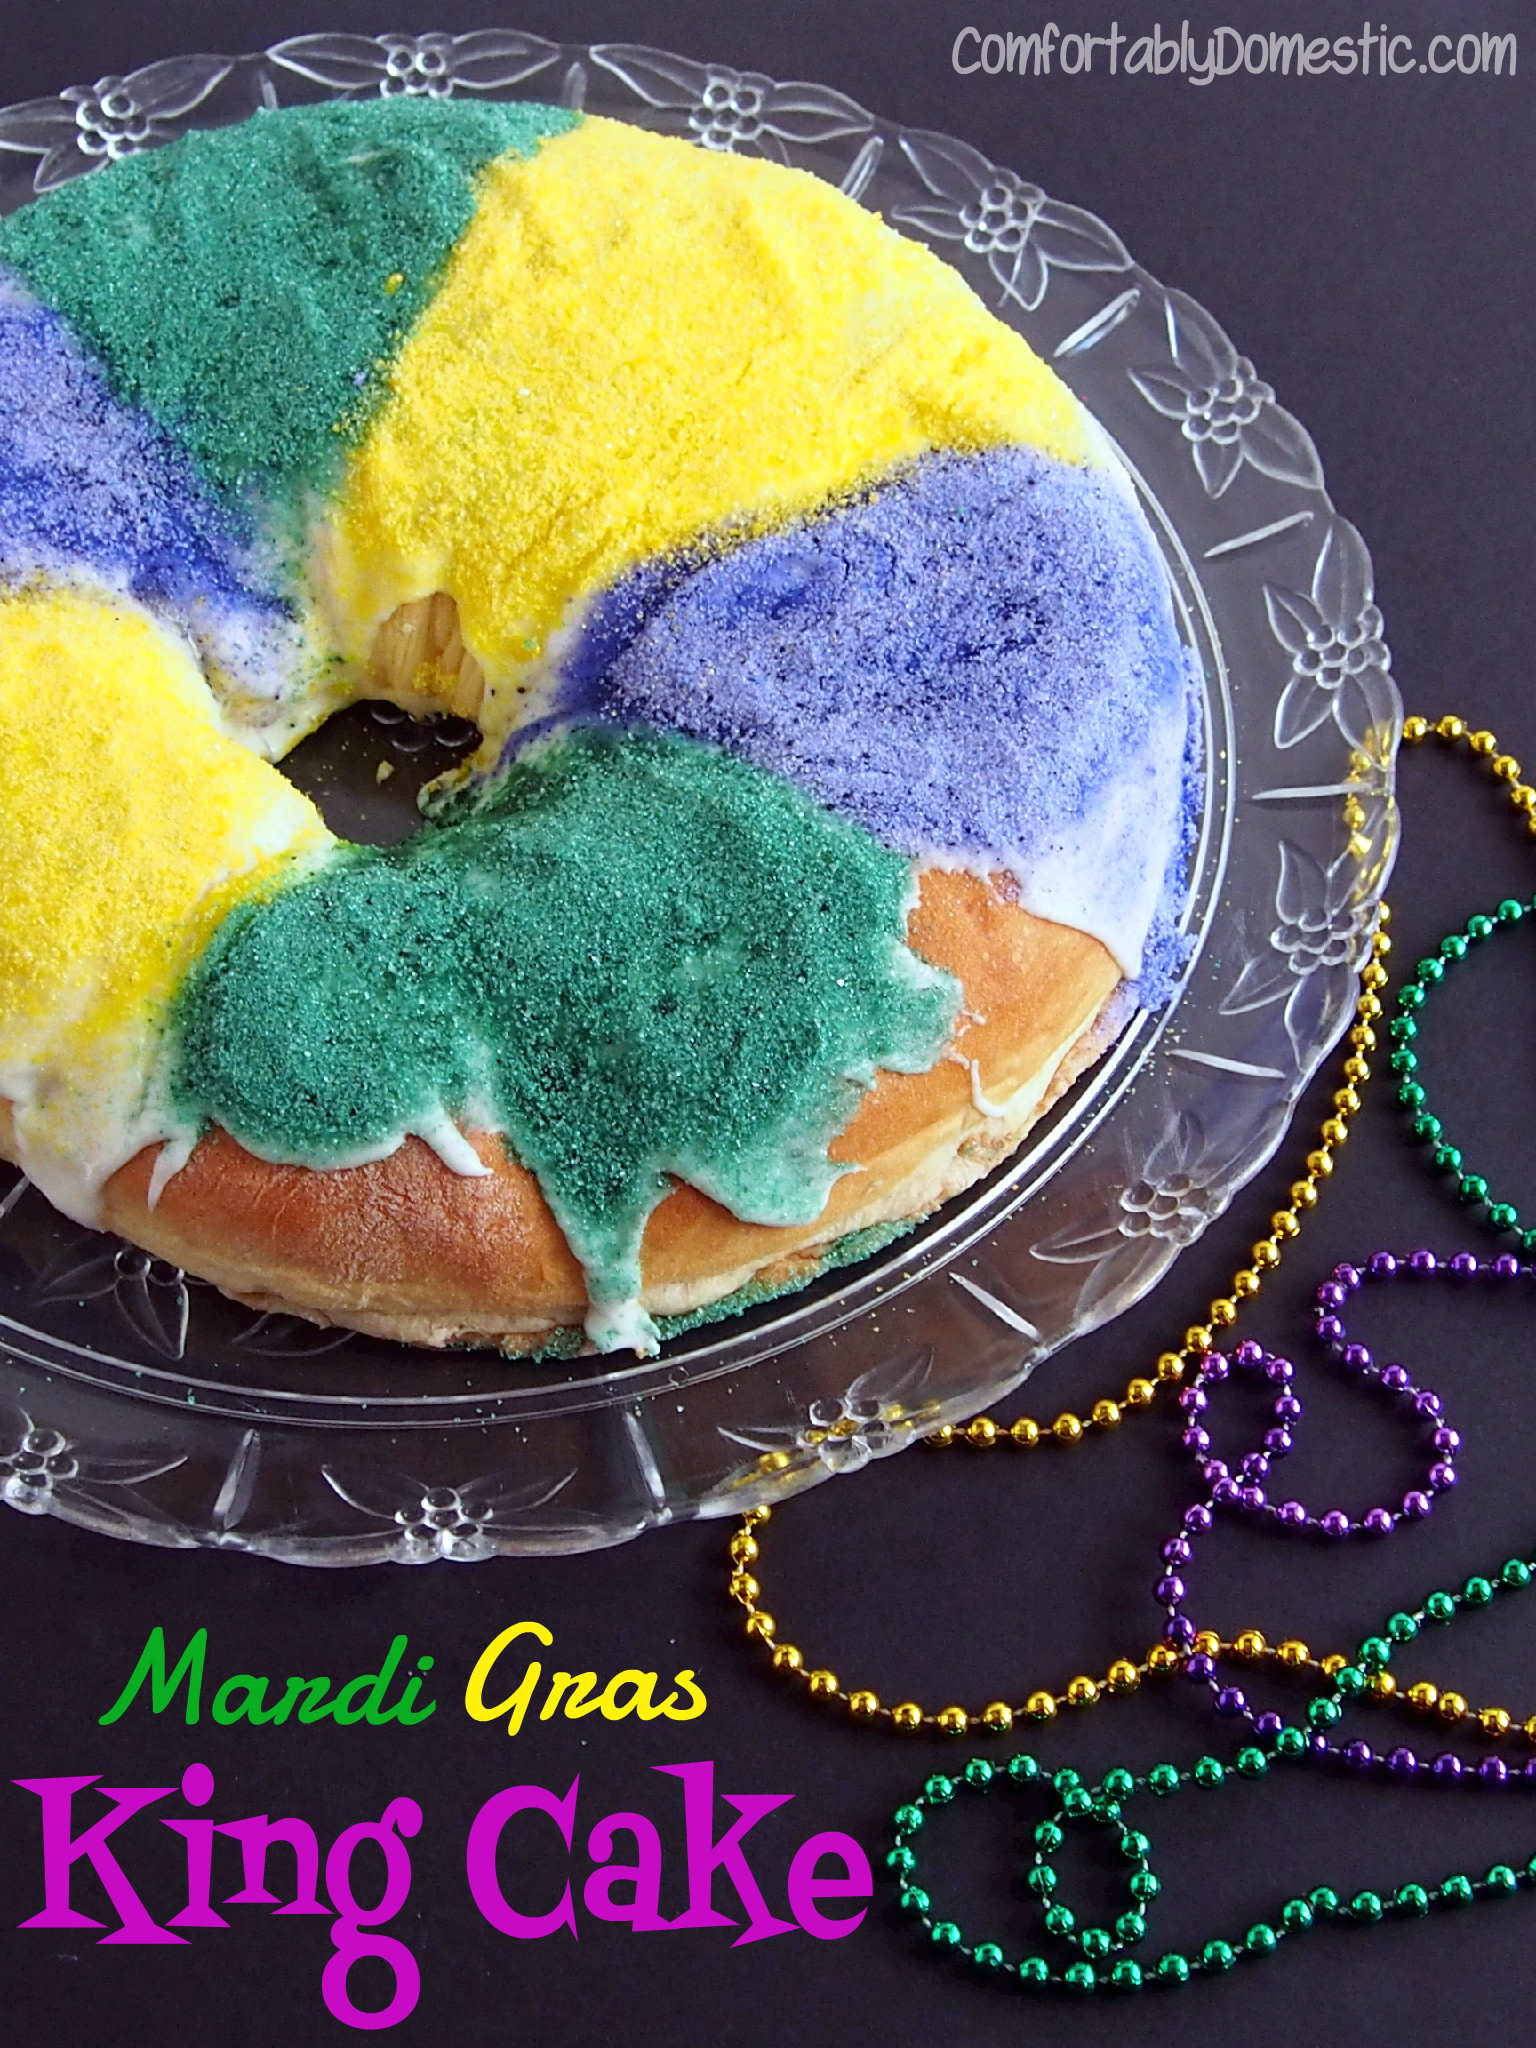 Epiphany - Mardi Gras King Cake with Cinnamon Cream Cheese Filling | ComfortablyDomestic.com